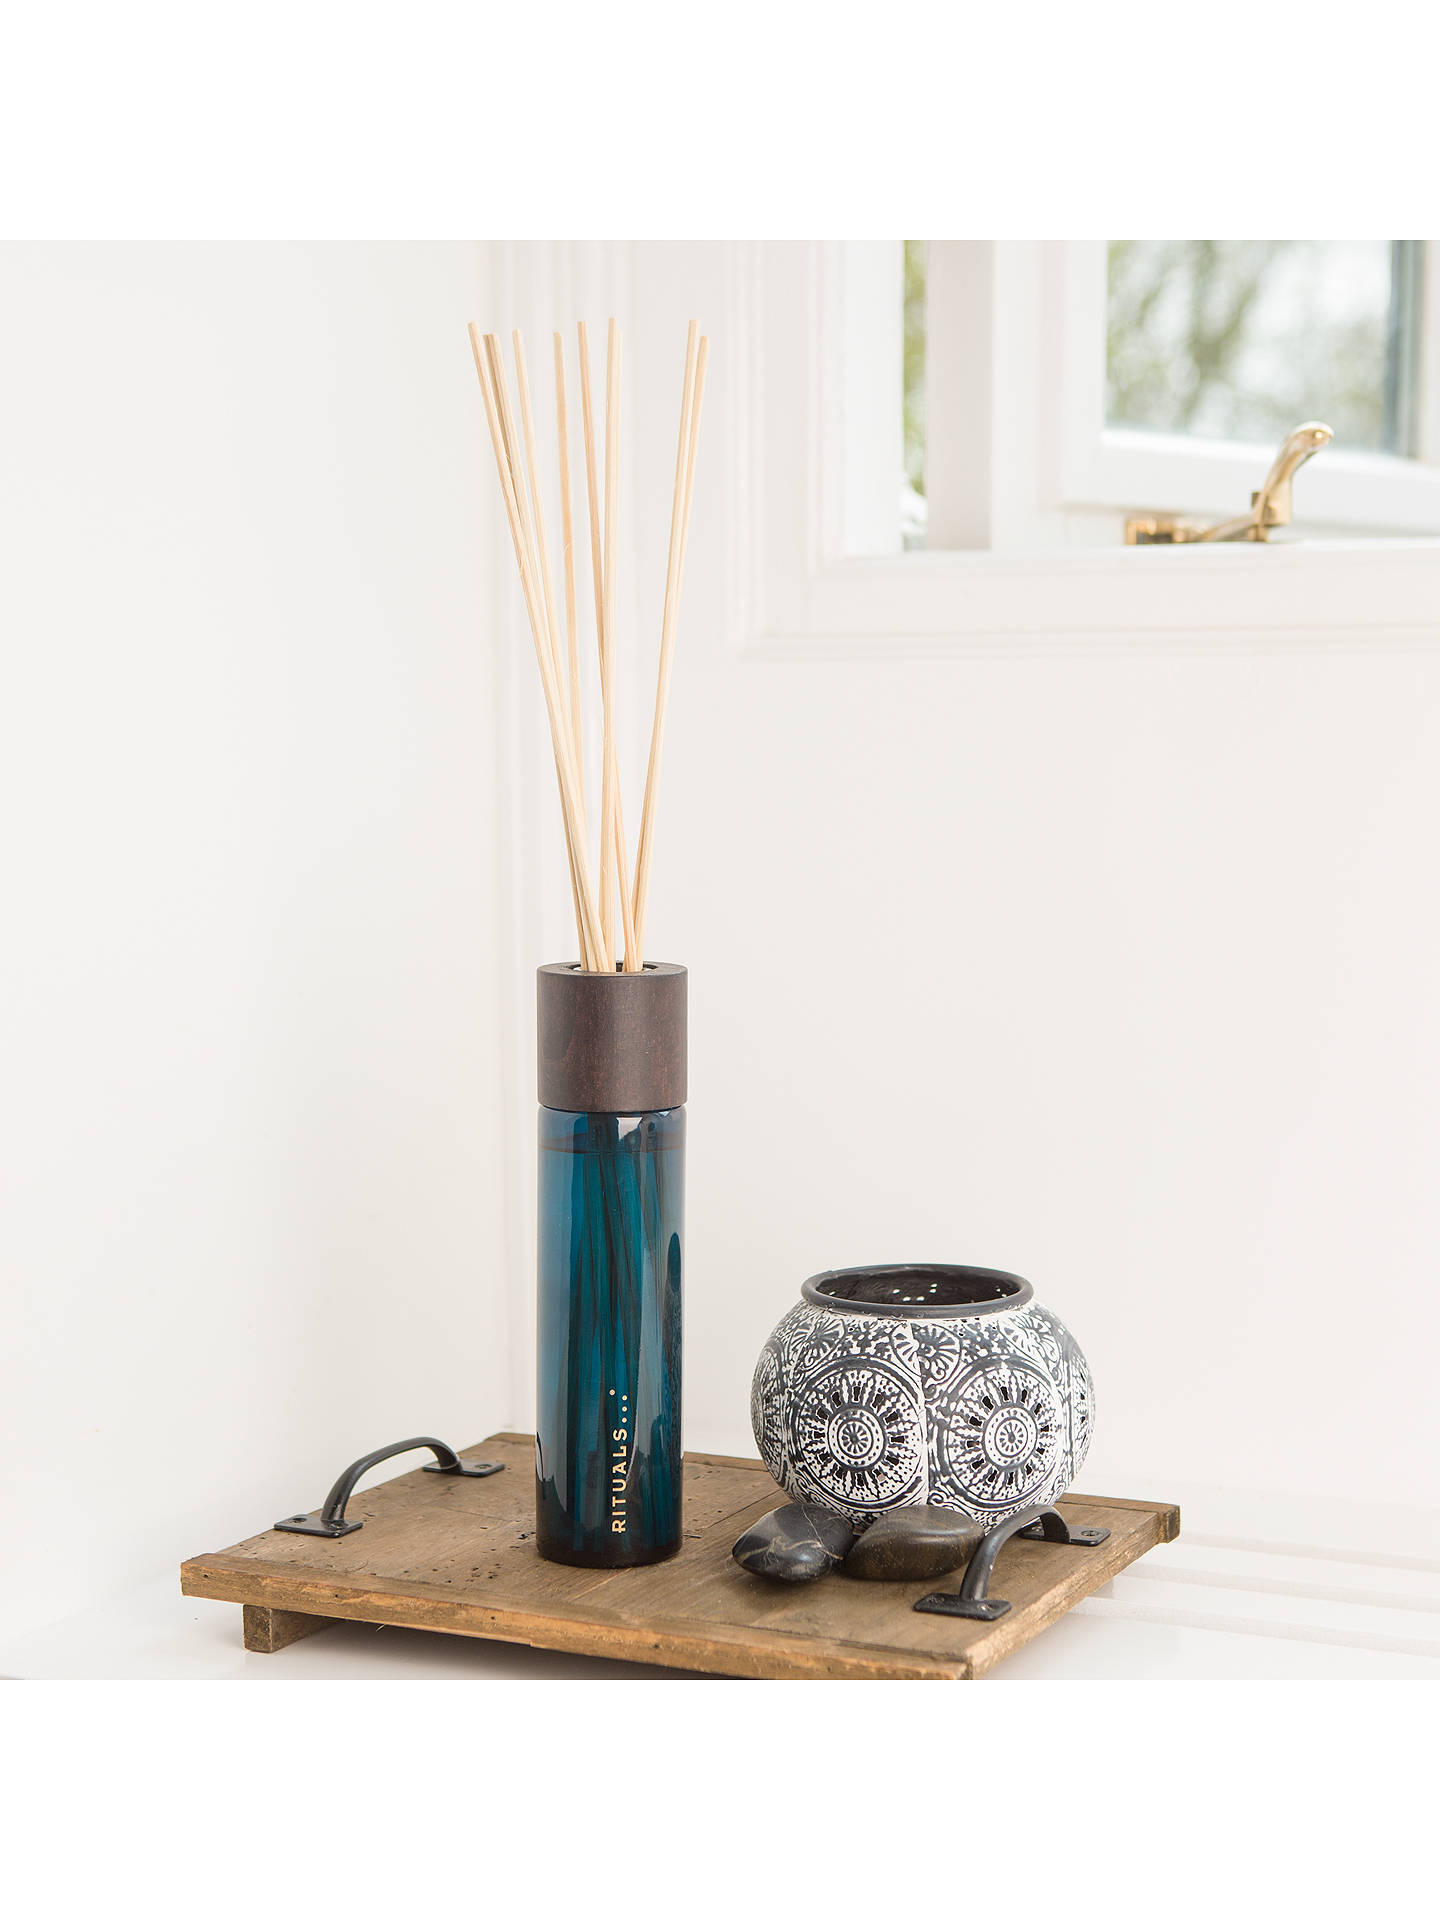 Buy Rituals The Ritual of Hammam Fragrance Sticks Online at johnlewis.com